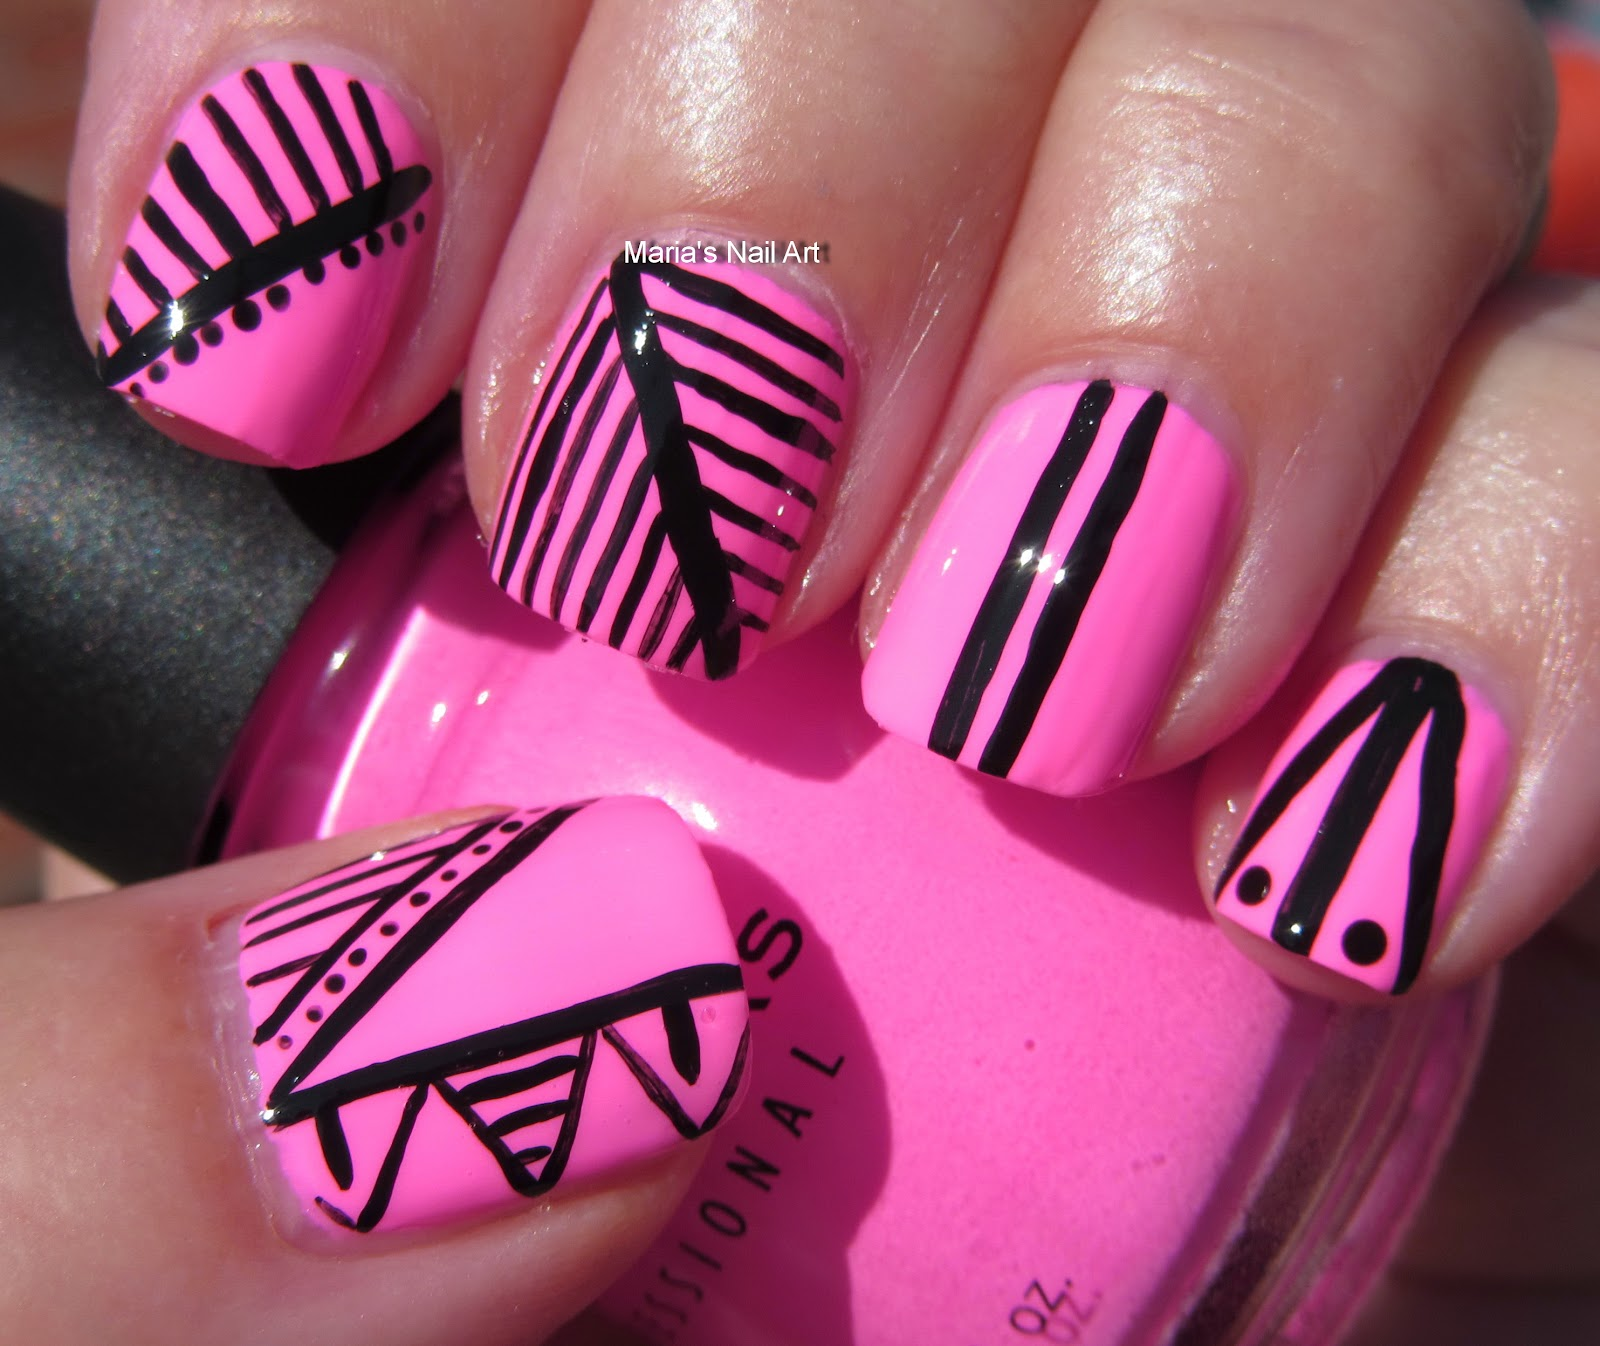 Marias Nail Art And Polish Blog Flushed With Stripes And: Marias Nail Art And Polish Blog: Black & Pink